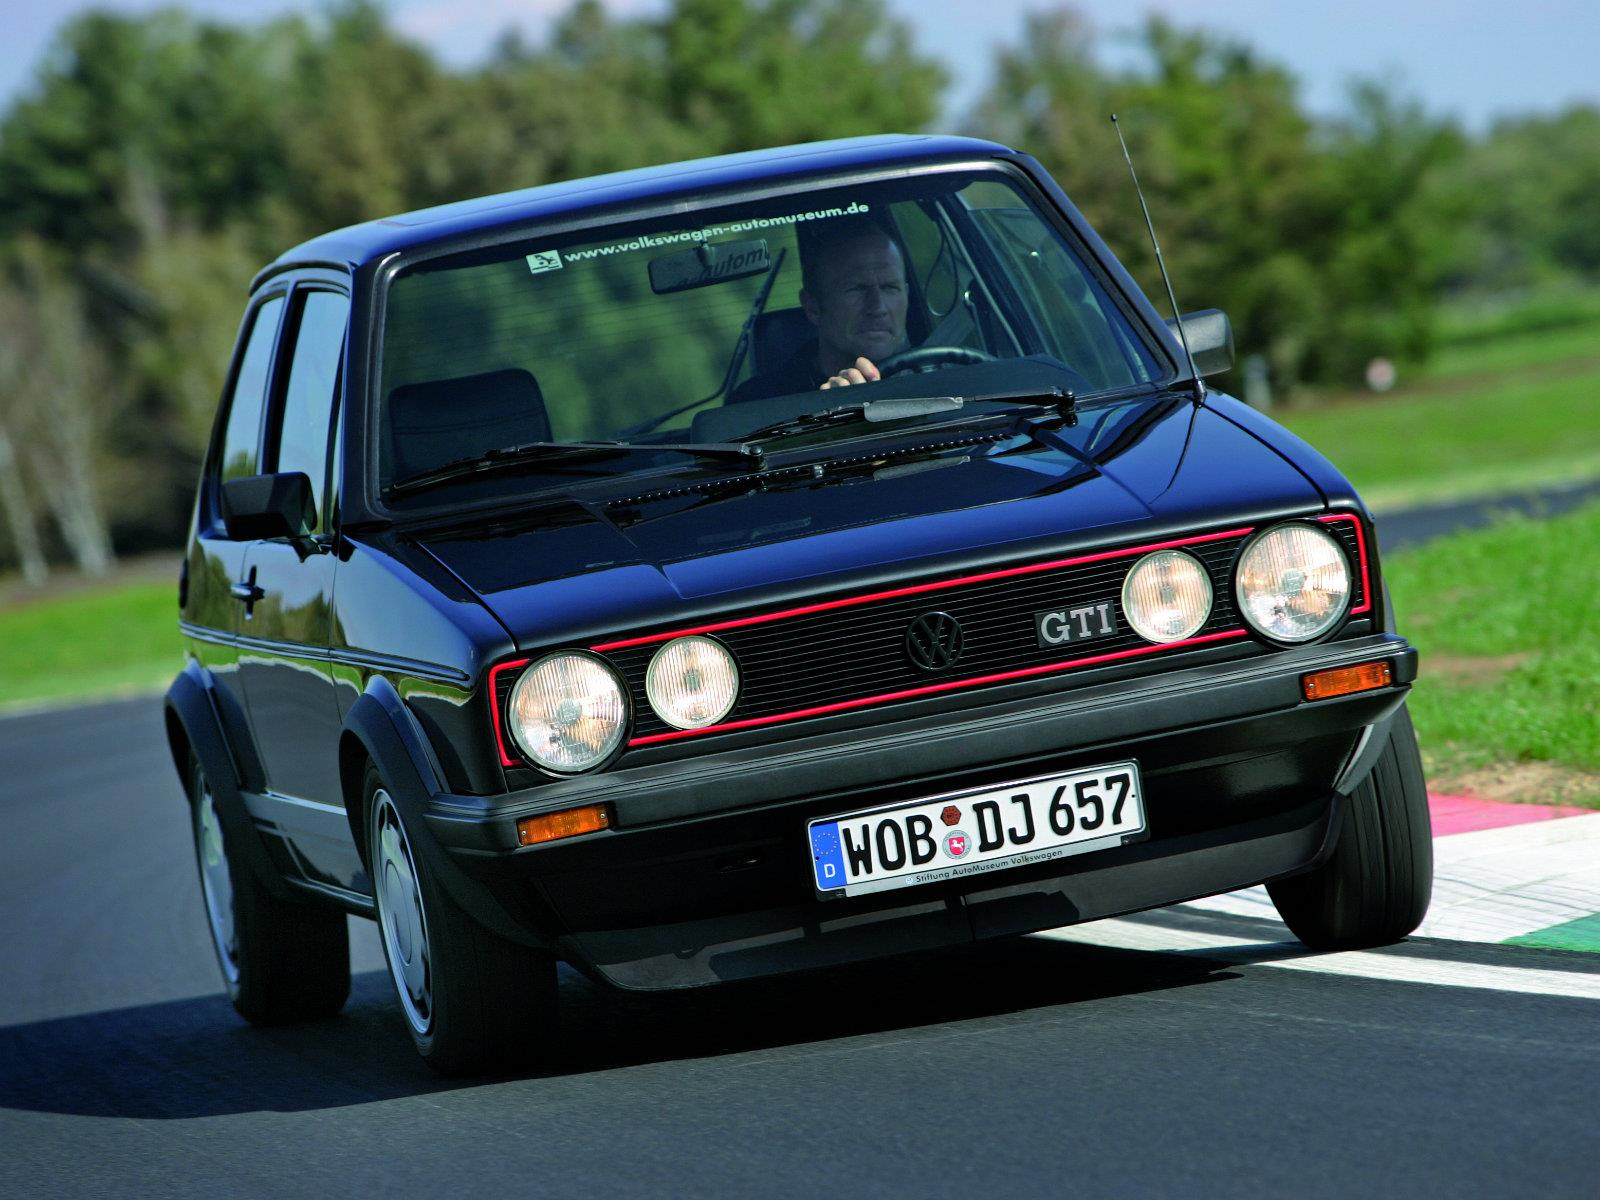 volkswagen golf gti y sus siete generaciones. Black Bedroom Furniture Sets. Home Design Ideas